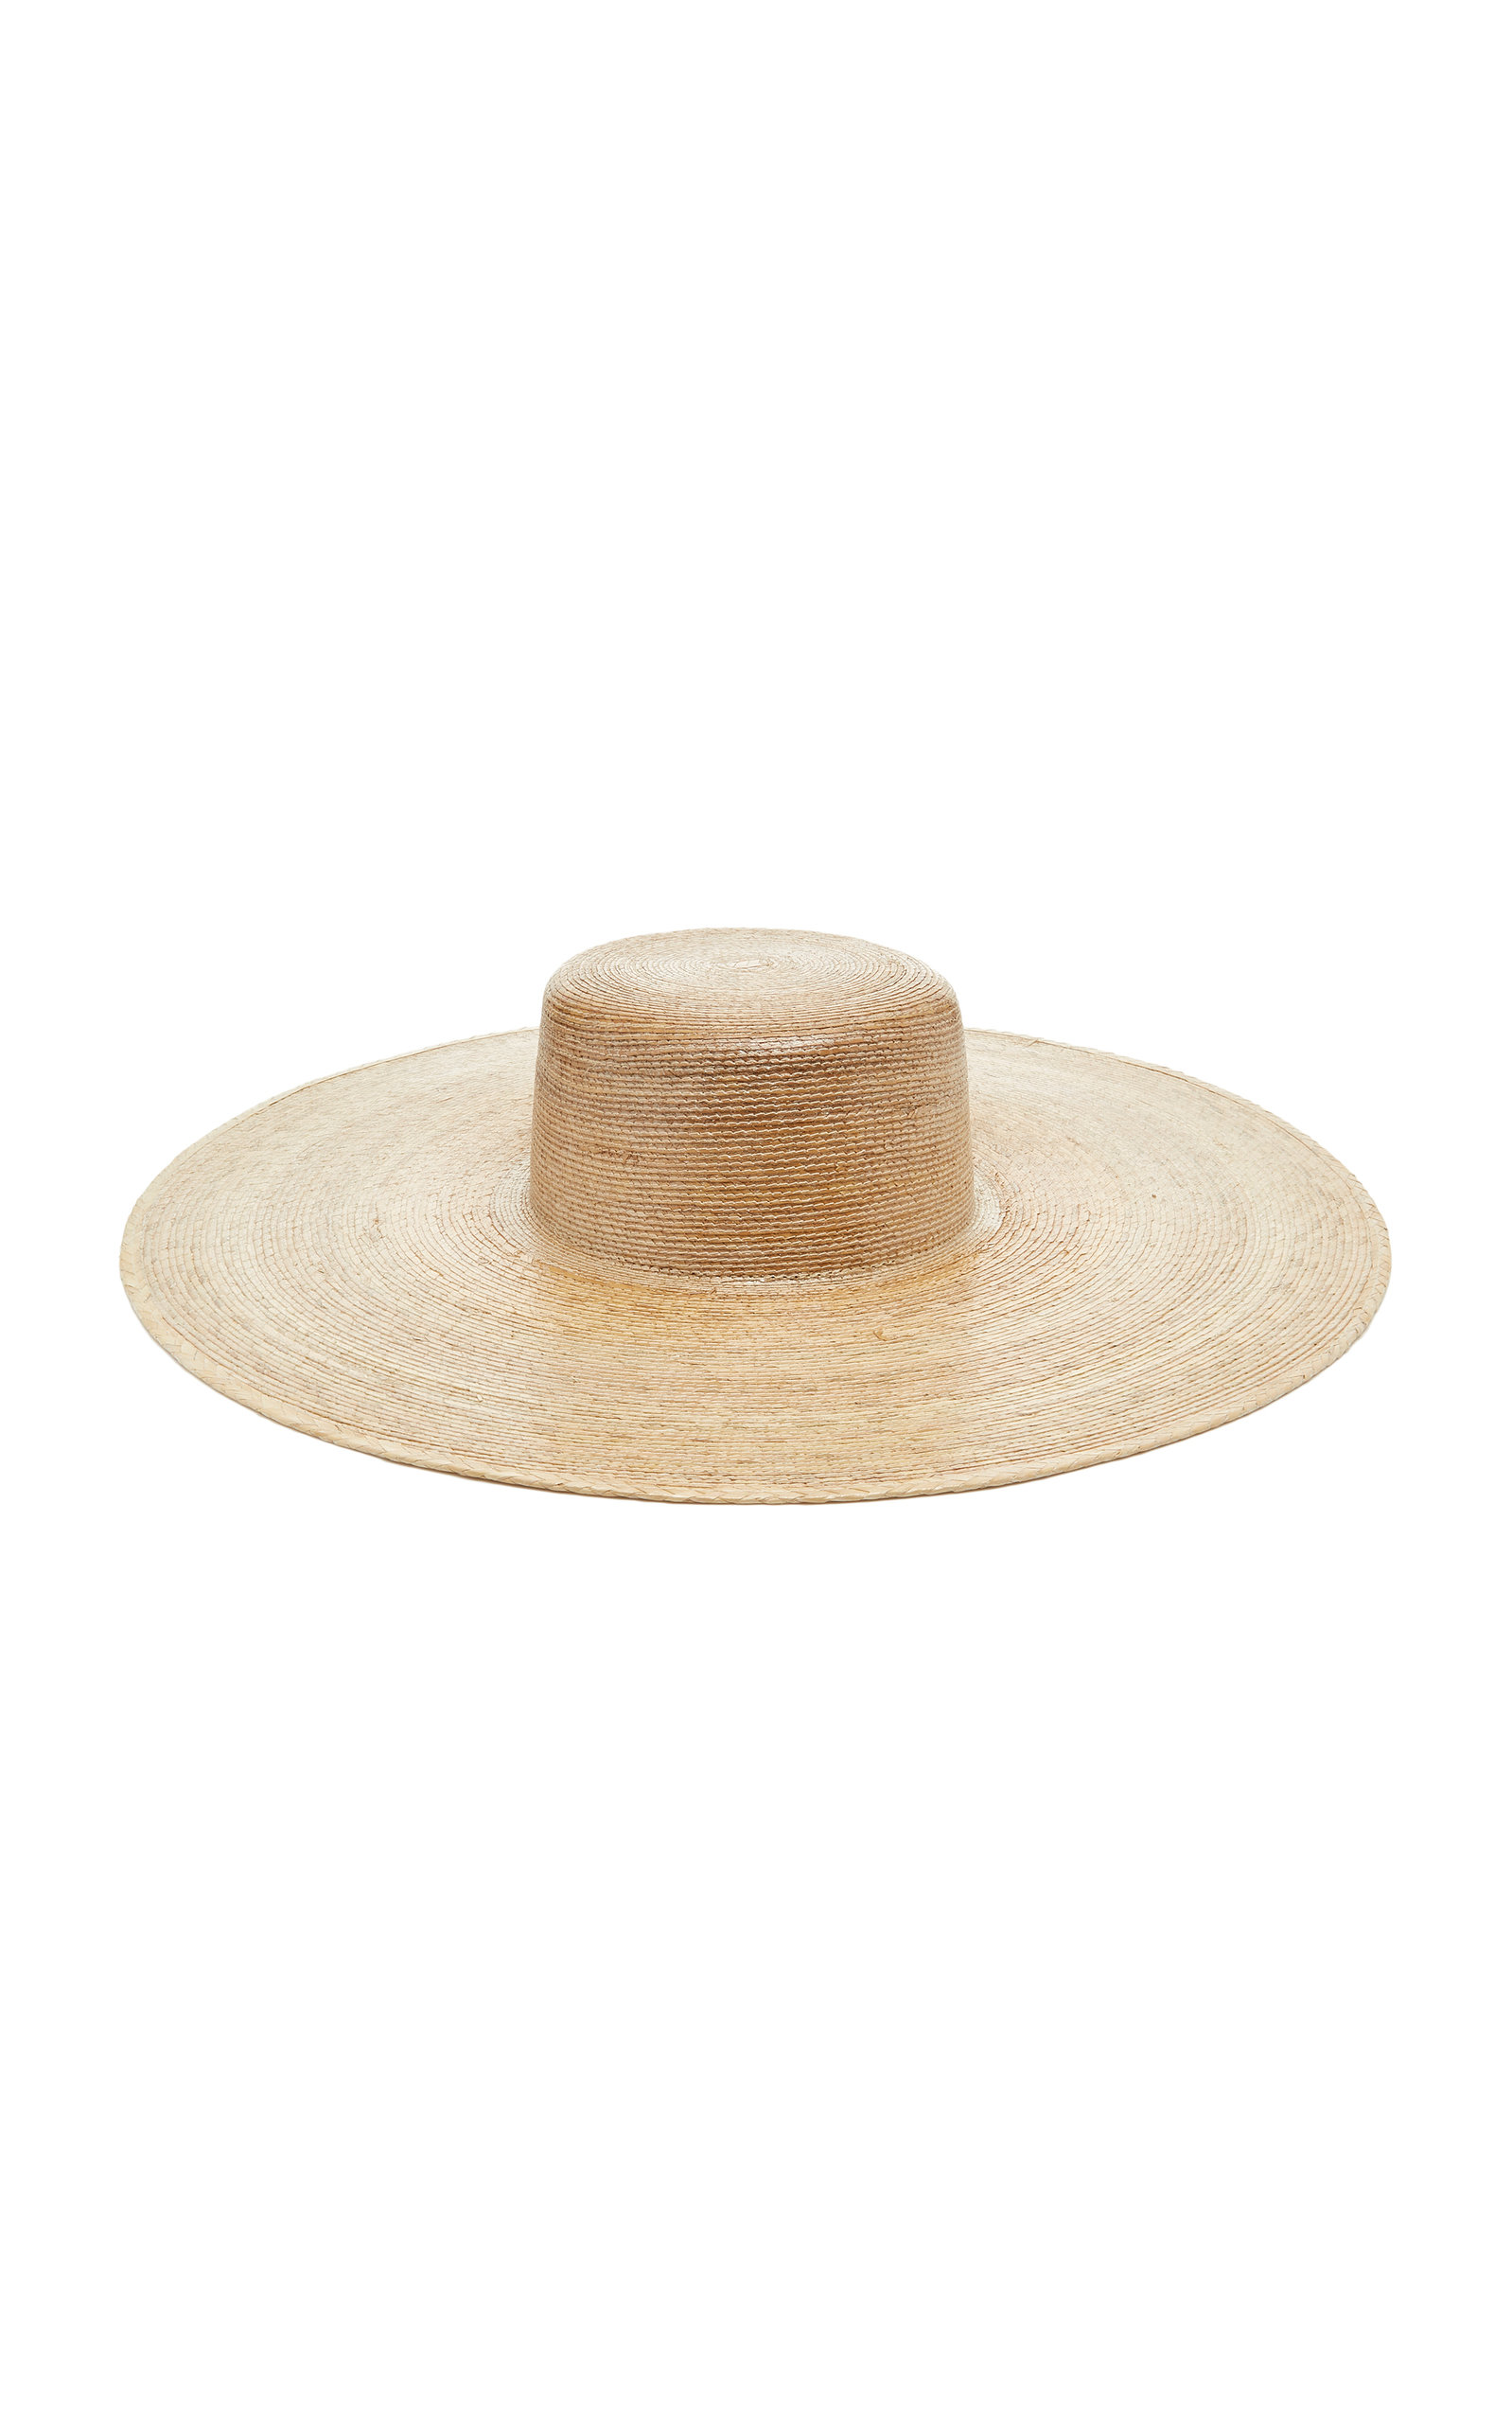 aaf8143ac404a9 Wide-Brimmed Palm Boater by Lack of Color | Moda Operandi